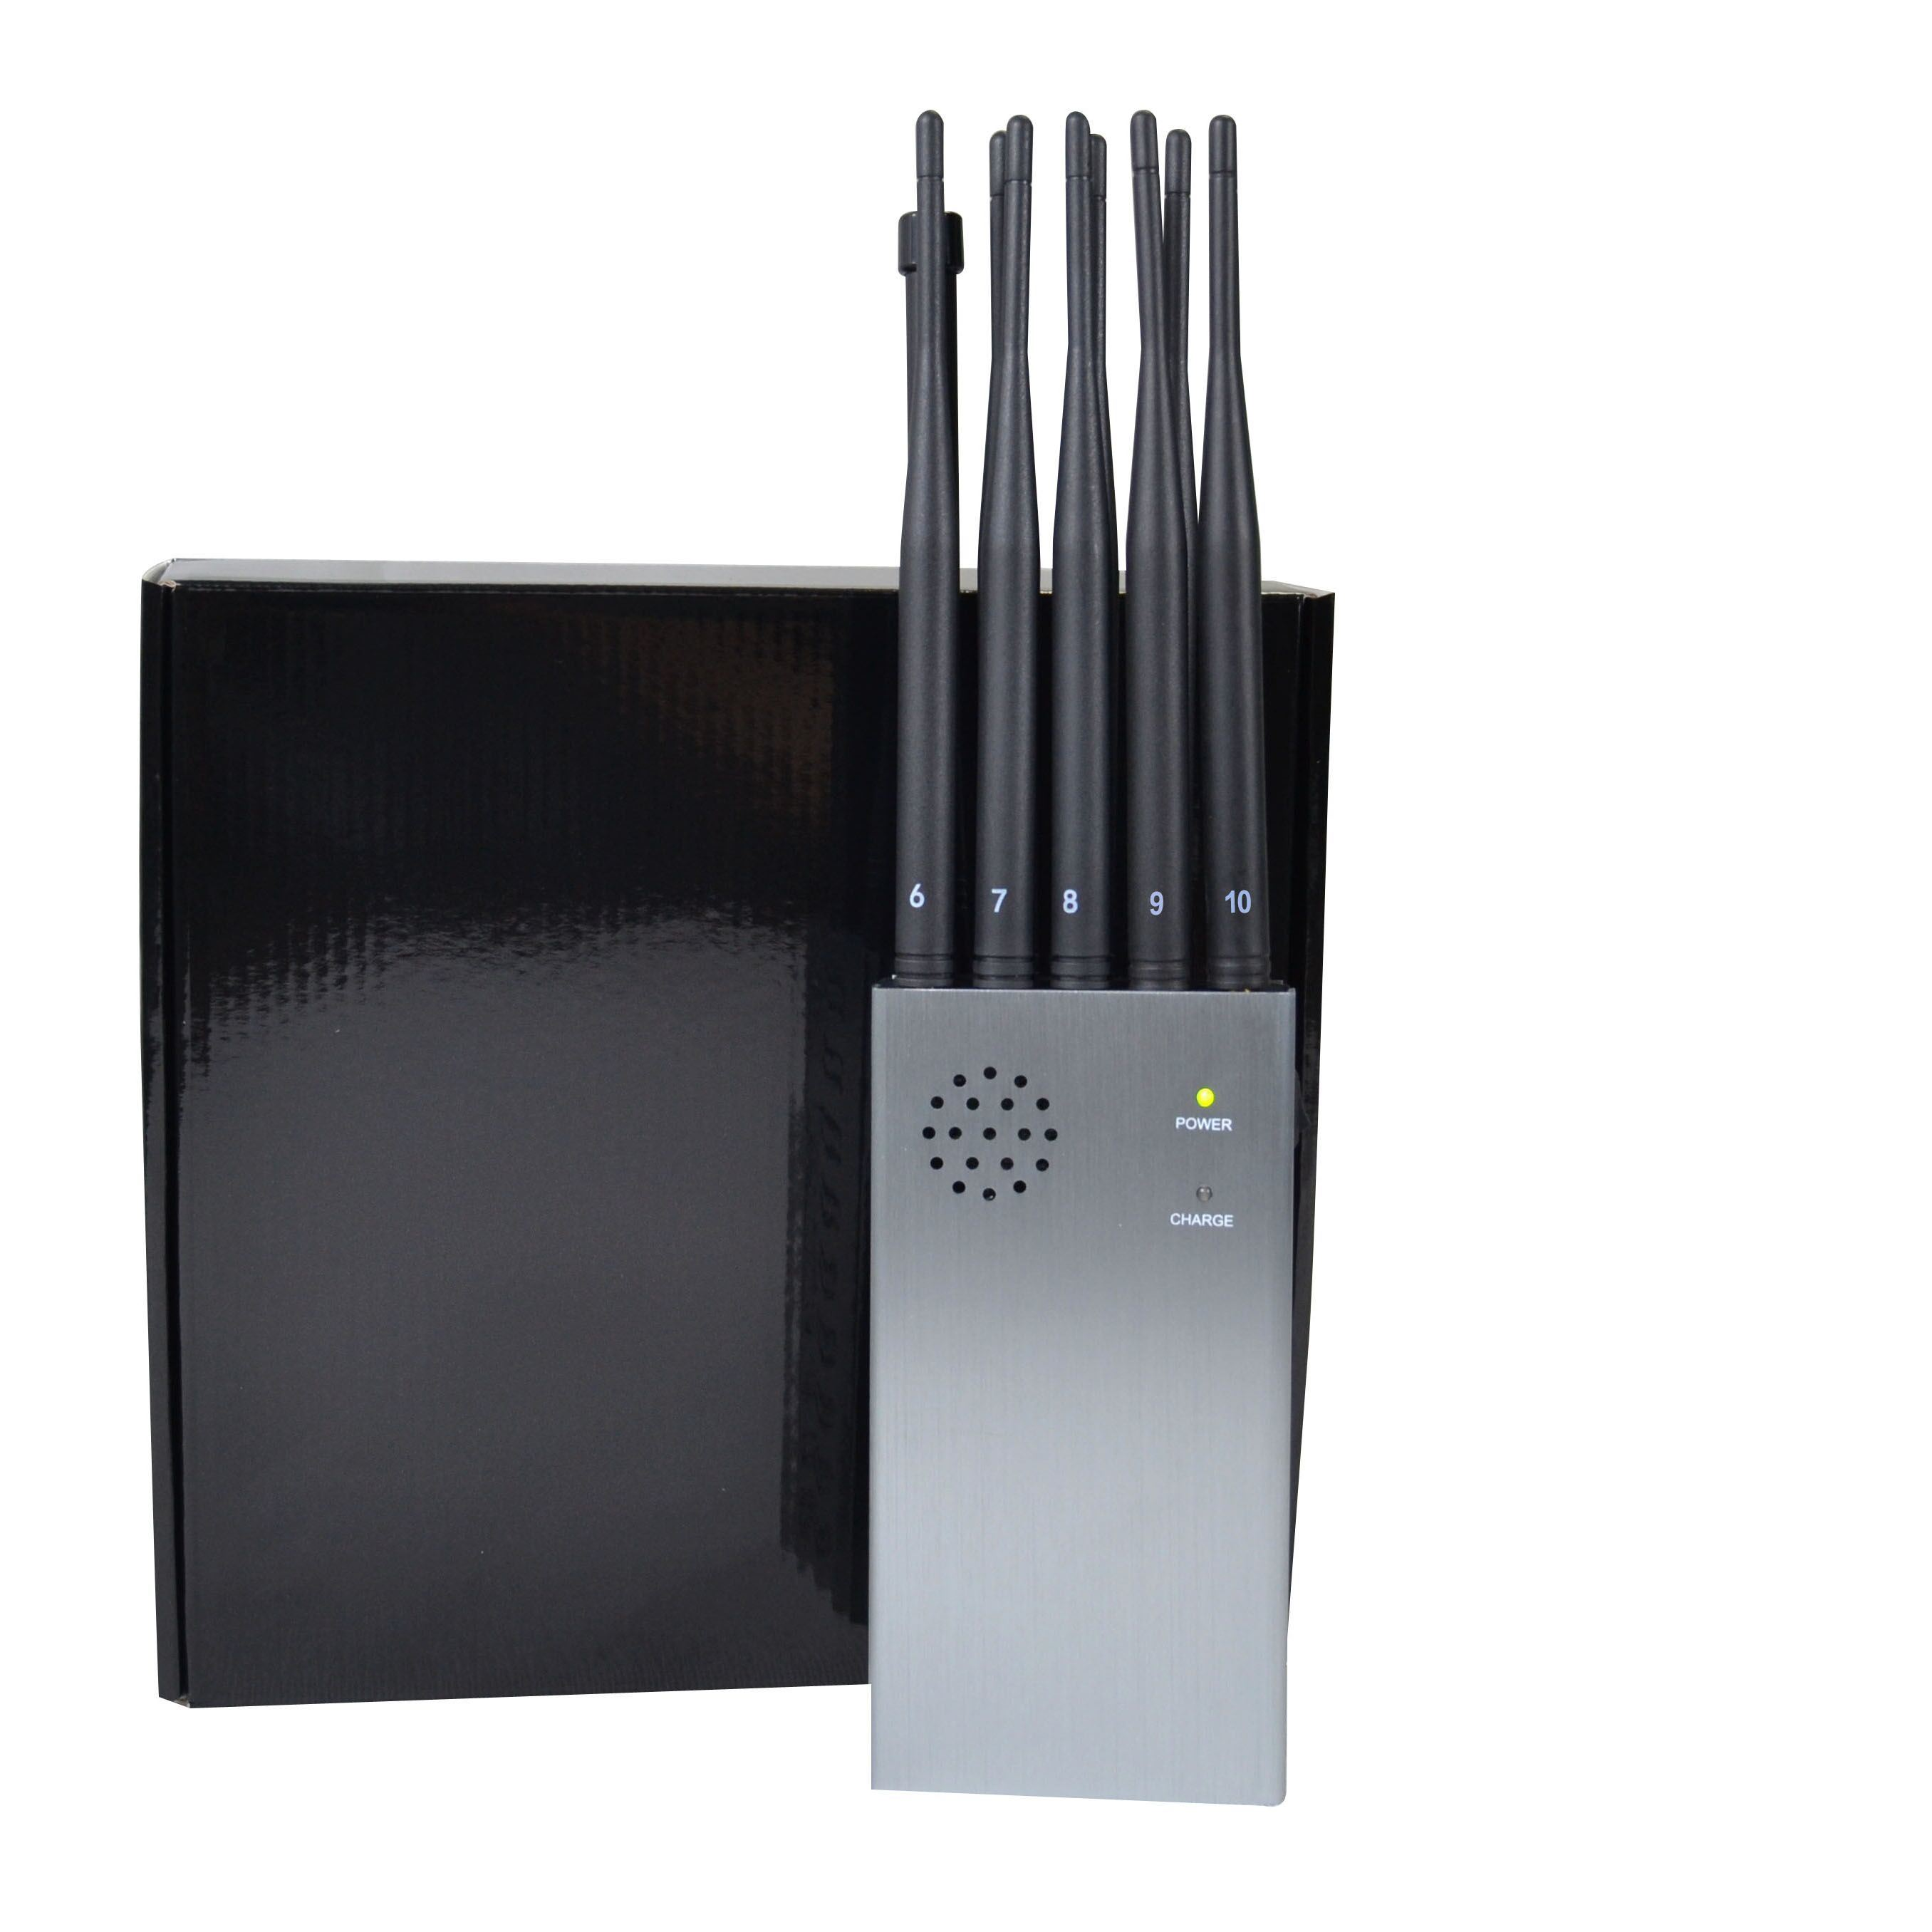 mini phone jammer j - China High Power up to 8000mA Battery Portable Jammer for Military Using Including Lojack, 3G 4G 2g 5g Remote Control GPS Signals - China 8000mA Battery Jammer, Large Volume Power Signal Blocker